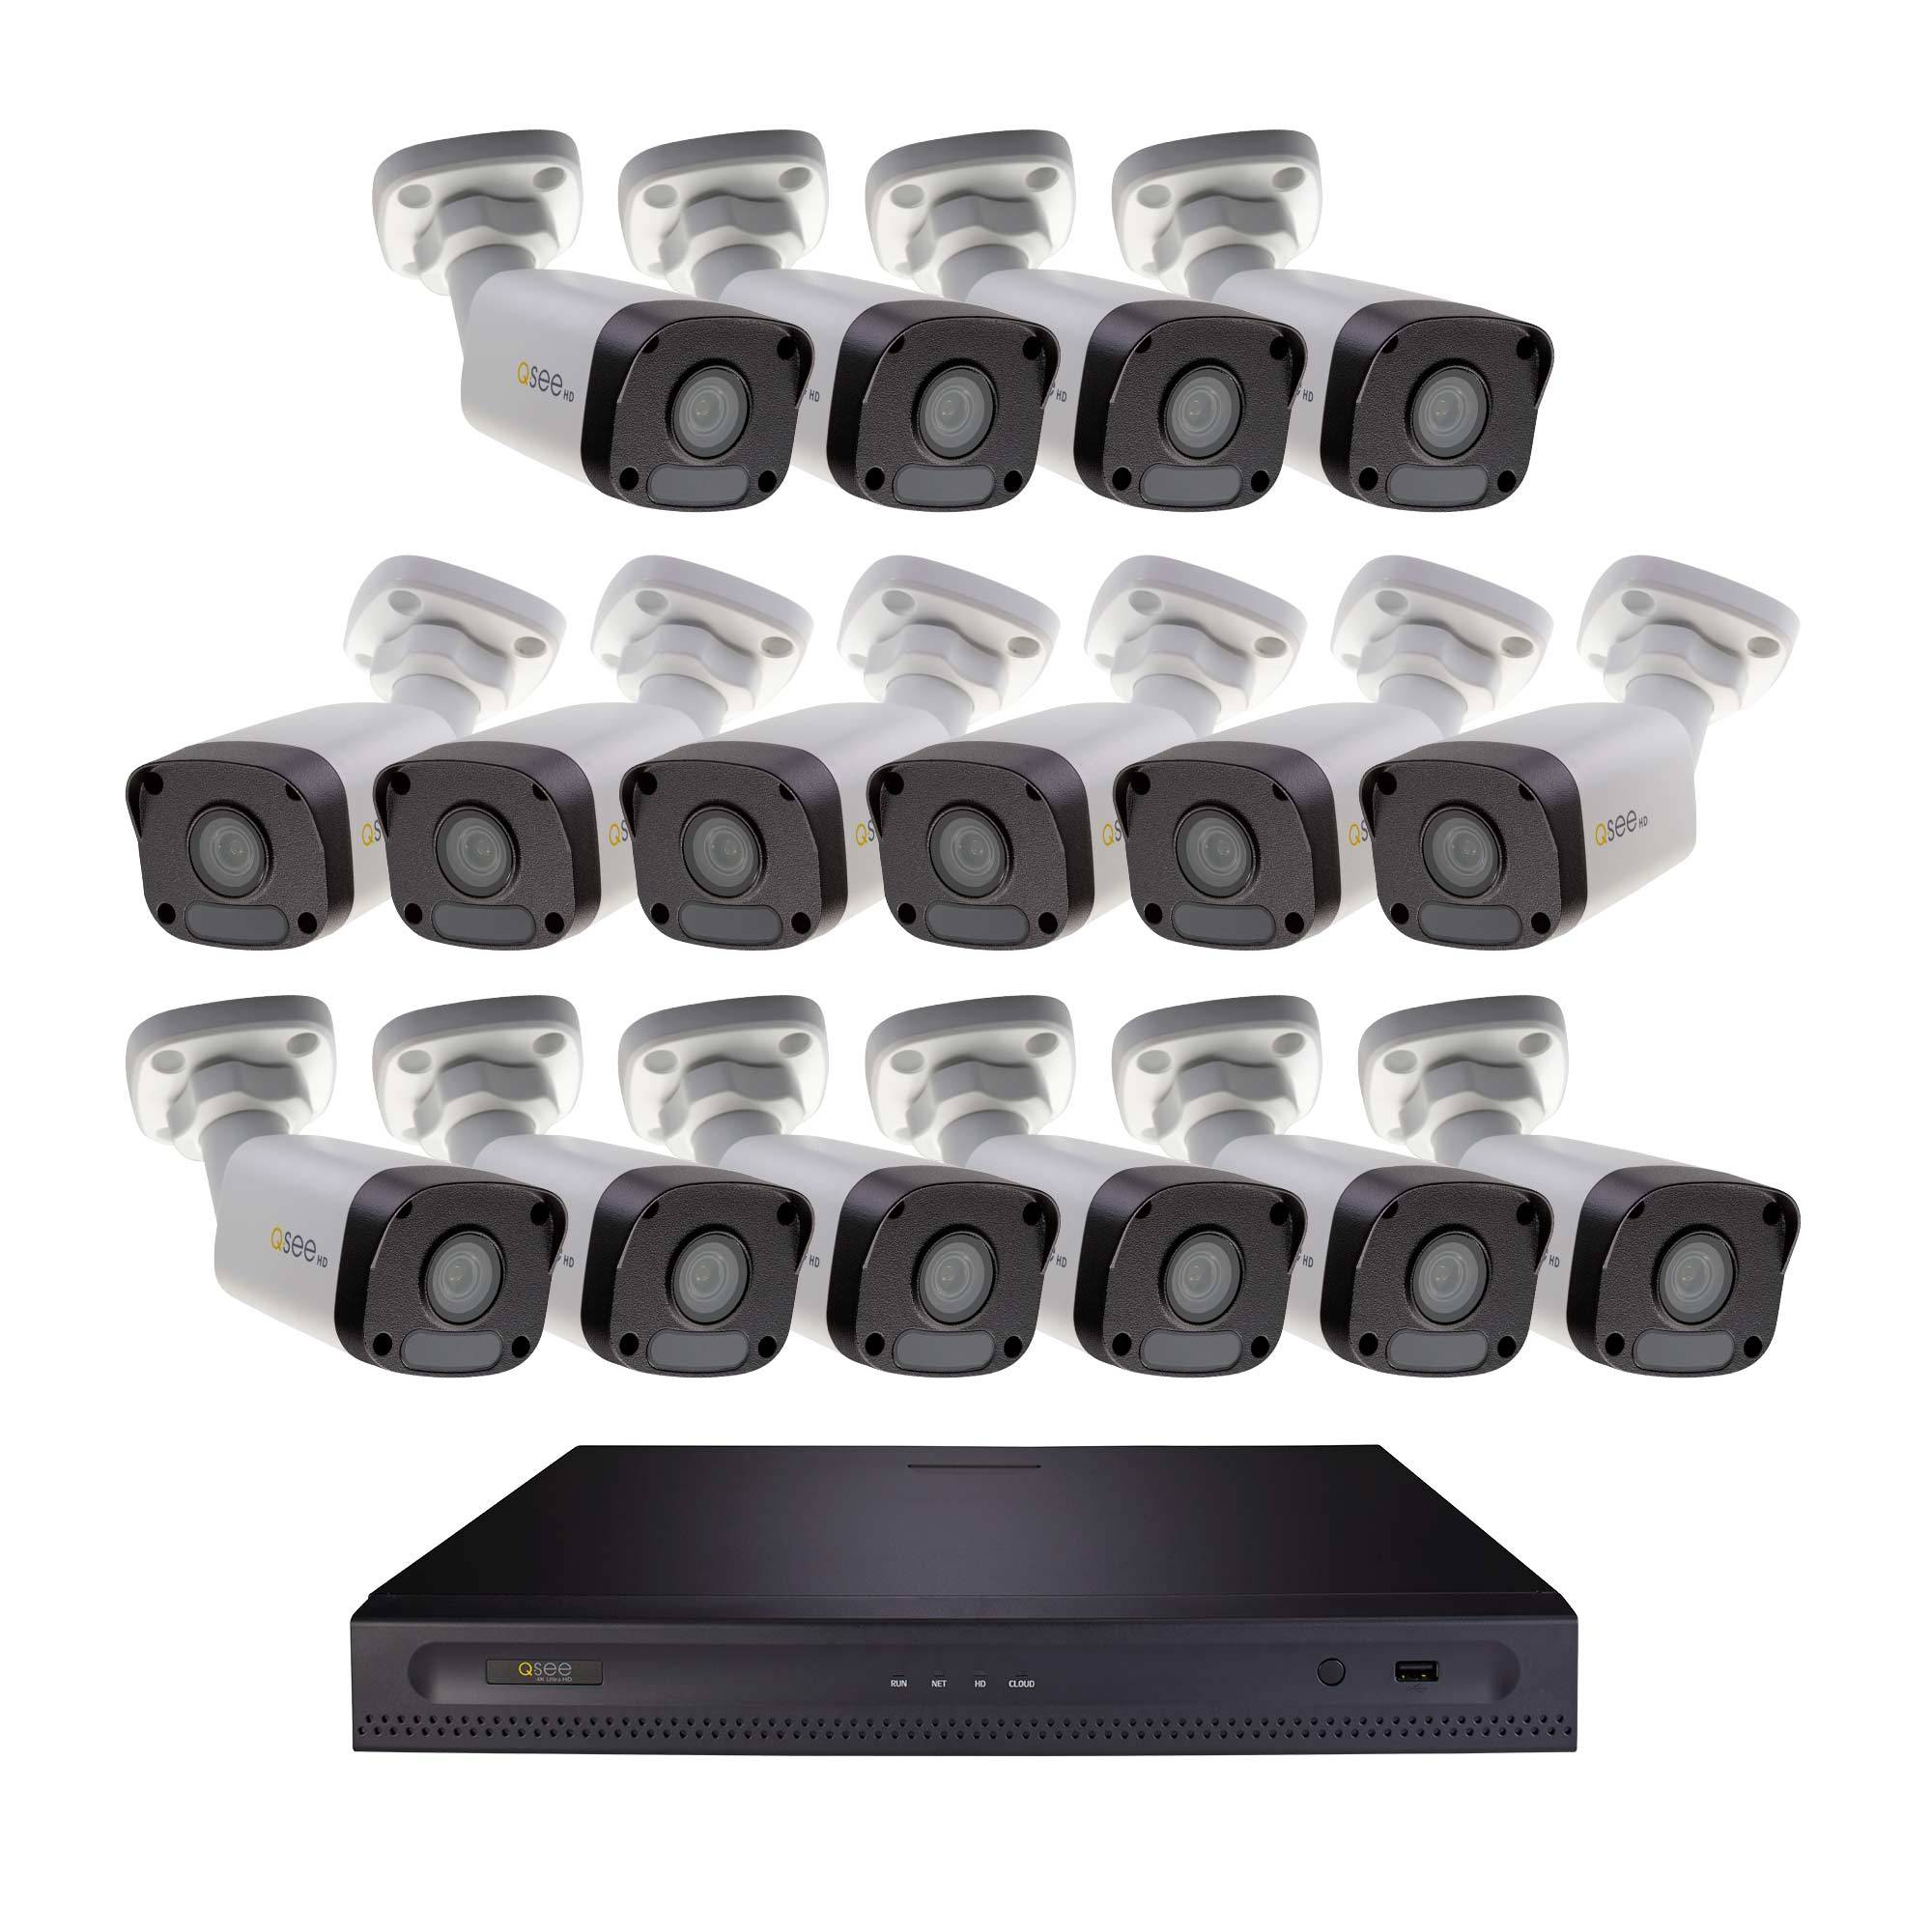 5MP HD 16 Channel IP Security System with 2TB Hard Drive and 16 5MP IP Outdoor Bullet Cameras with Color Night Vision (H162K2.16) IP HD KIT  - Q-See